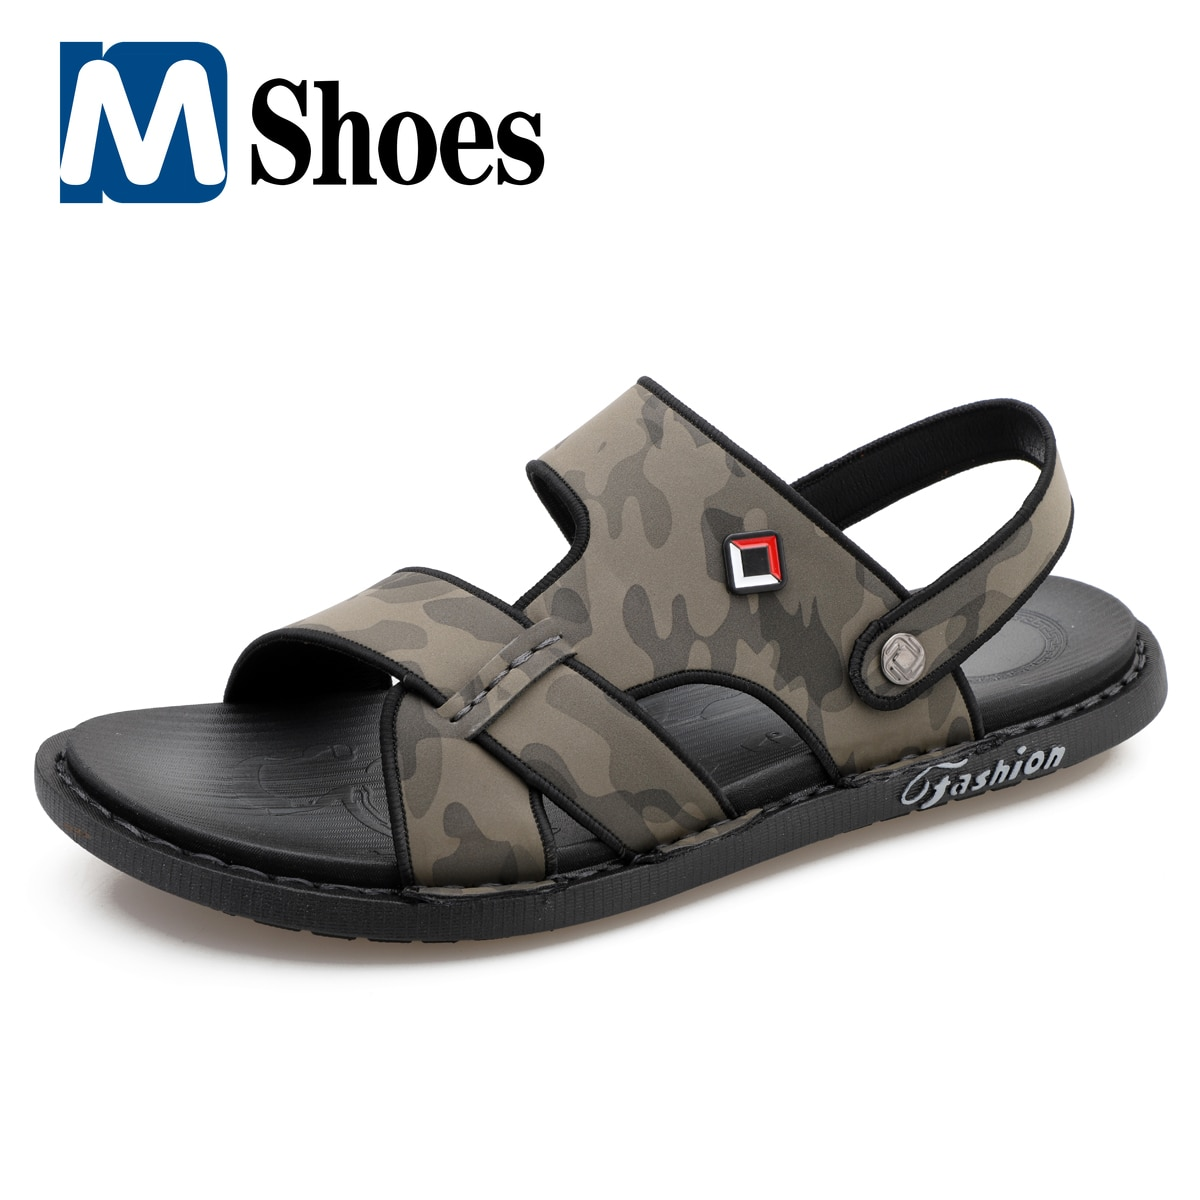 humtto summer men sandals 2021 breathable beach sandals for men's outdoor water mens hiking camping fishing climbing aqua shoes Summer Sandals for Men Flats Breathable Casual Shoes Wading Beach Slippers Mens Sandals Outdoor Sneakers Zapatos Para Hombre